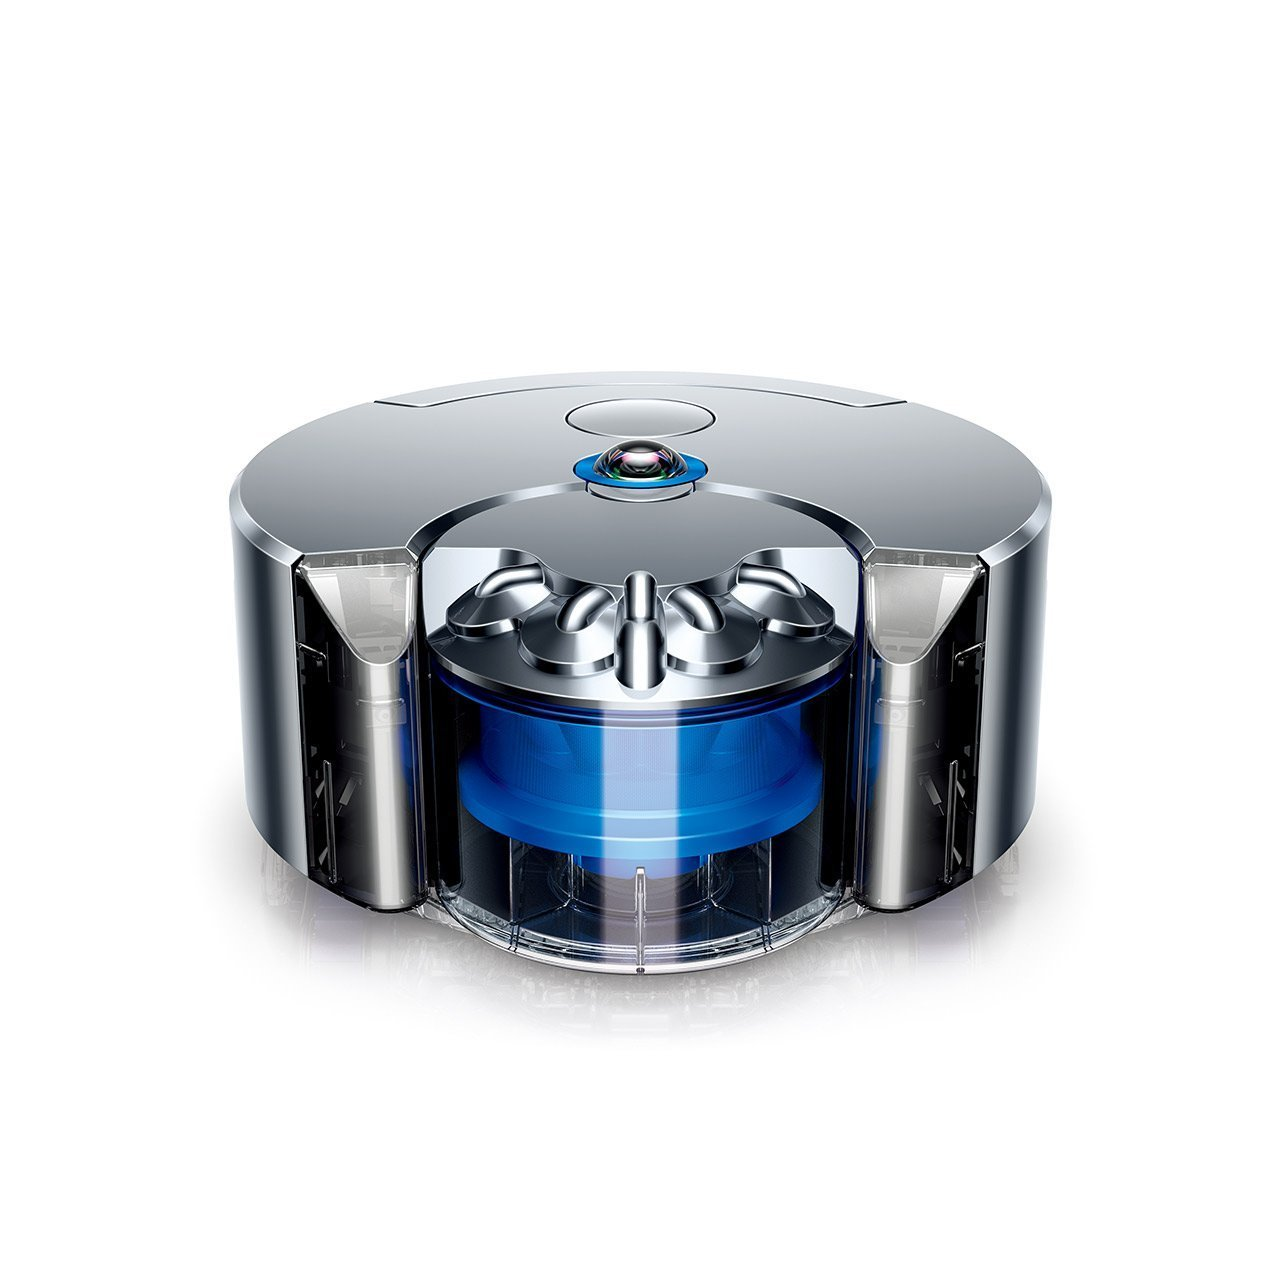 Dyson's robot vacuum fits the company's design language.